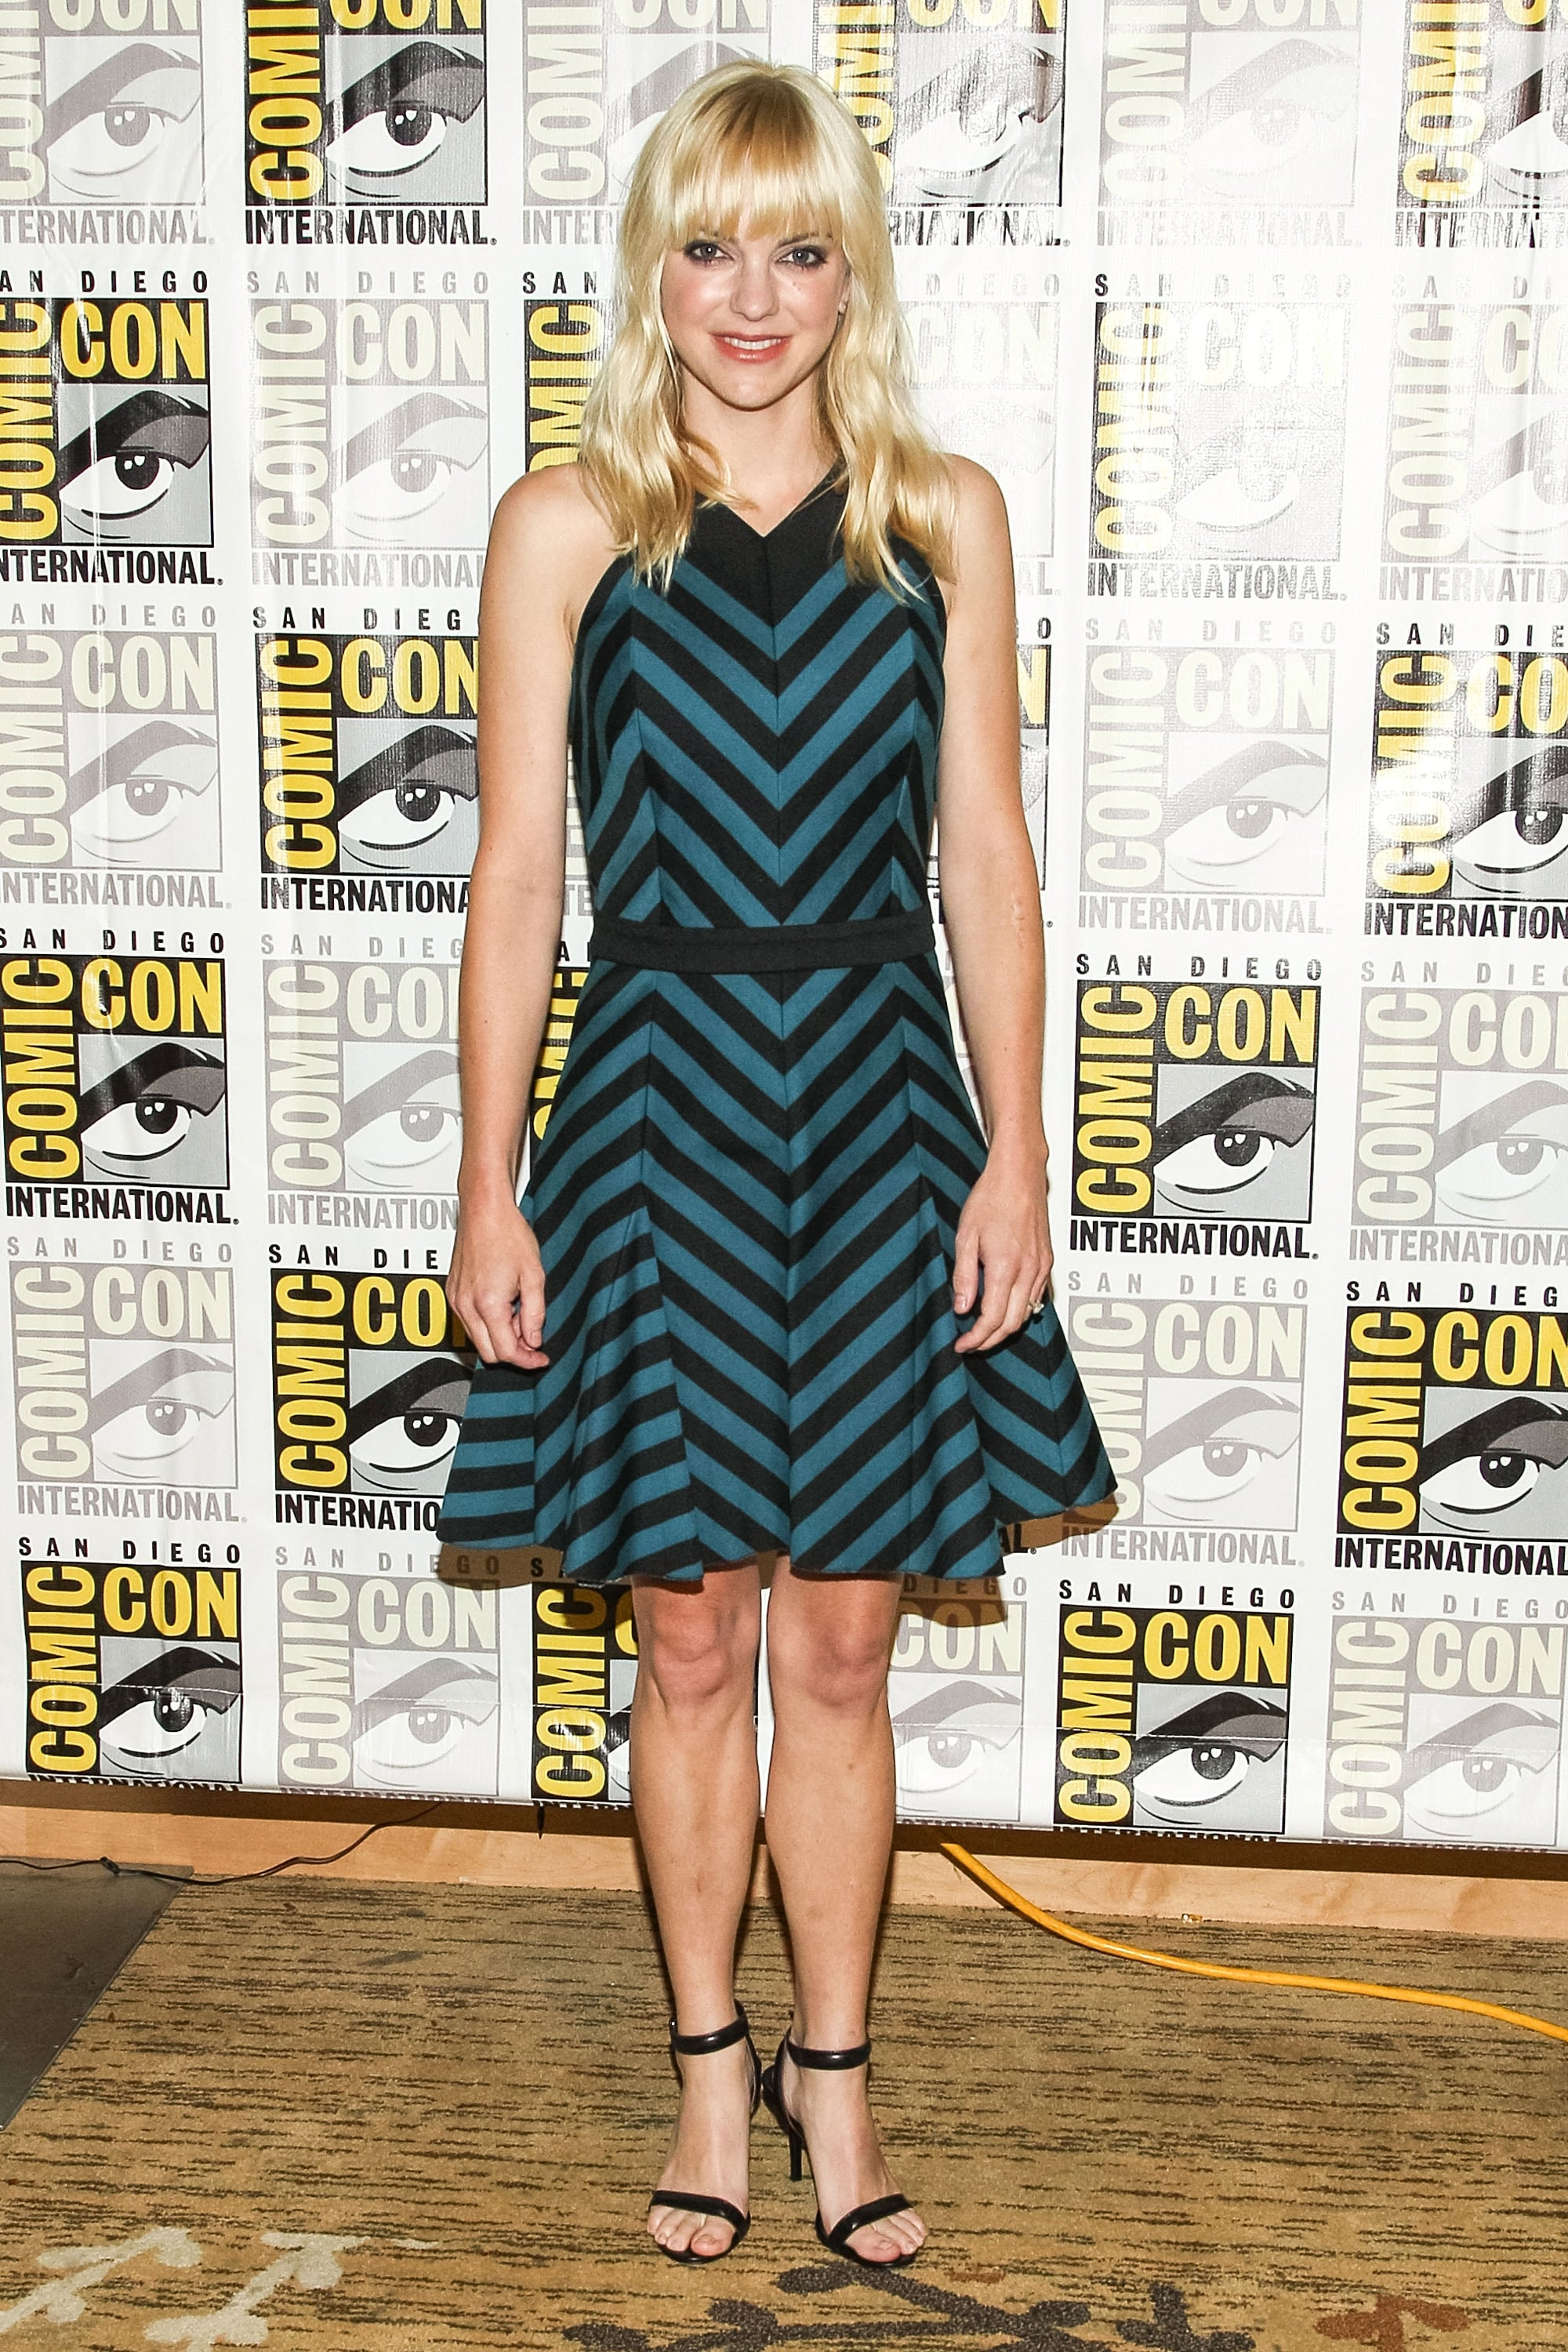 Anna Faris chose a teal and black dress from Robert Rodriguez for a press event promoting her movie Cloudy With a Chance of Meatballs 2.